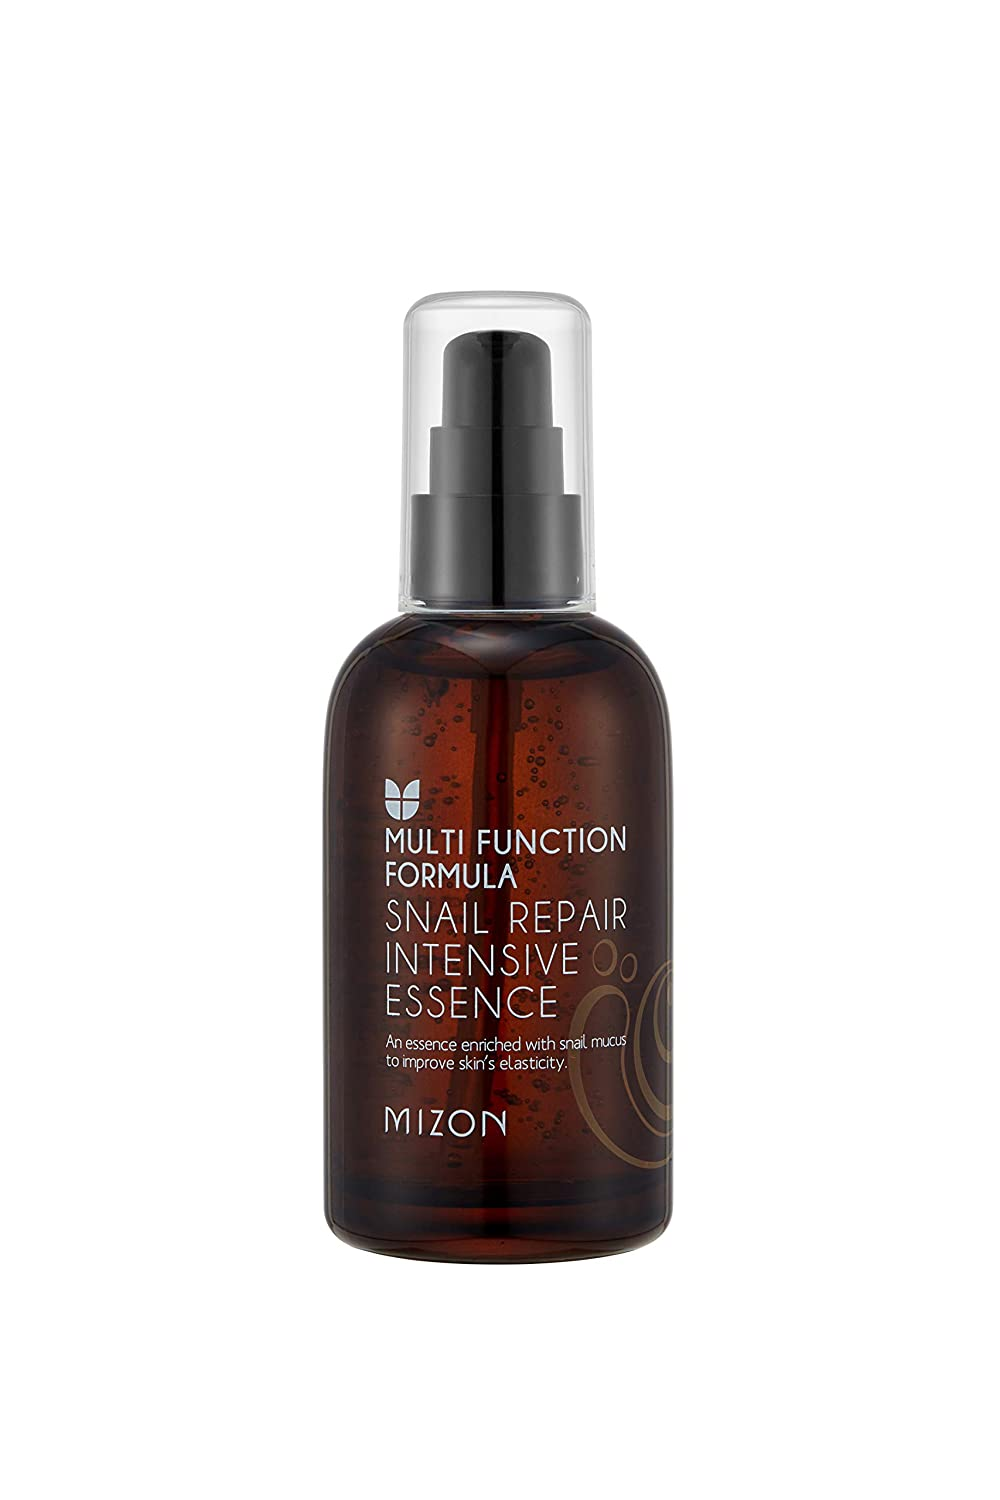 Mizon Snail Repair Intensive Care Line, Snail Facial Essence 3.38 fl oz, Korean Skincare, Improves Skin Tone and Fine Wrinkles, Smooth Skin Texture